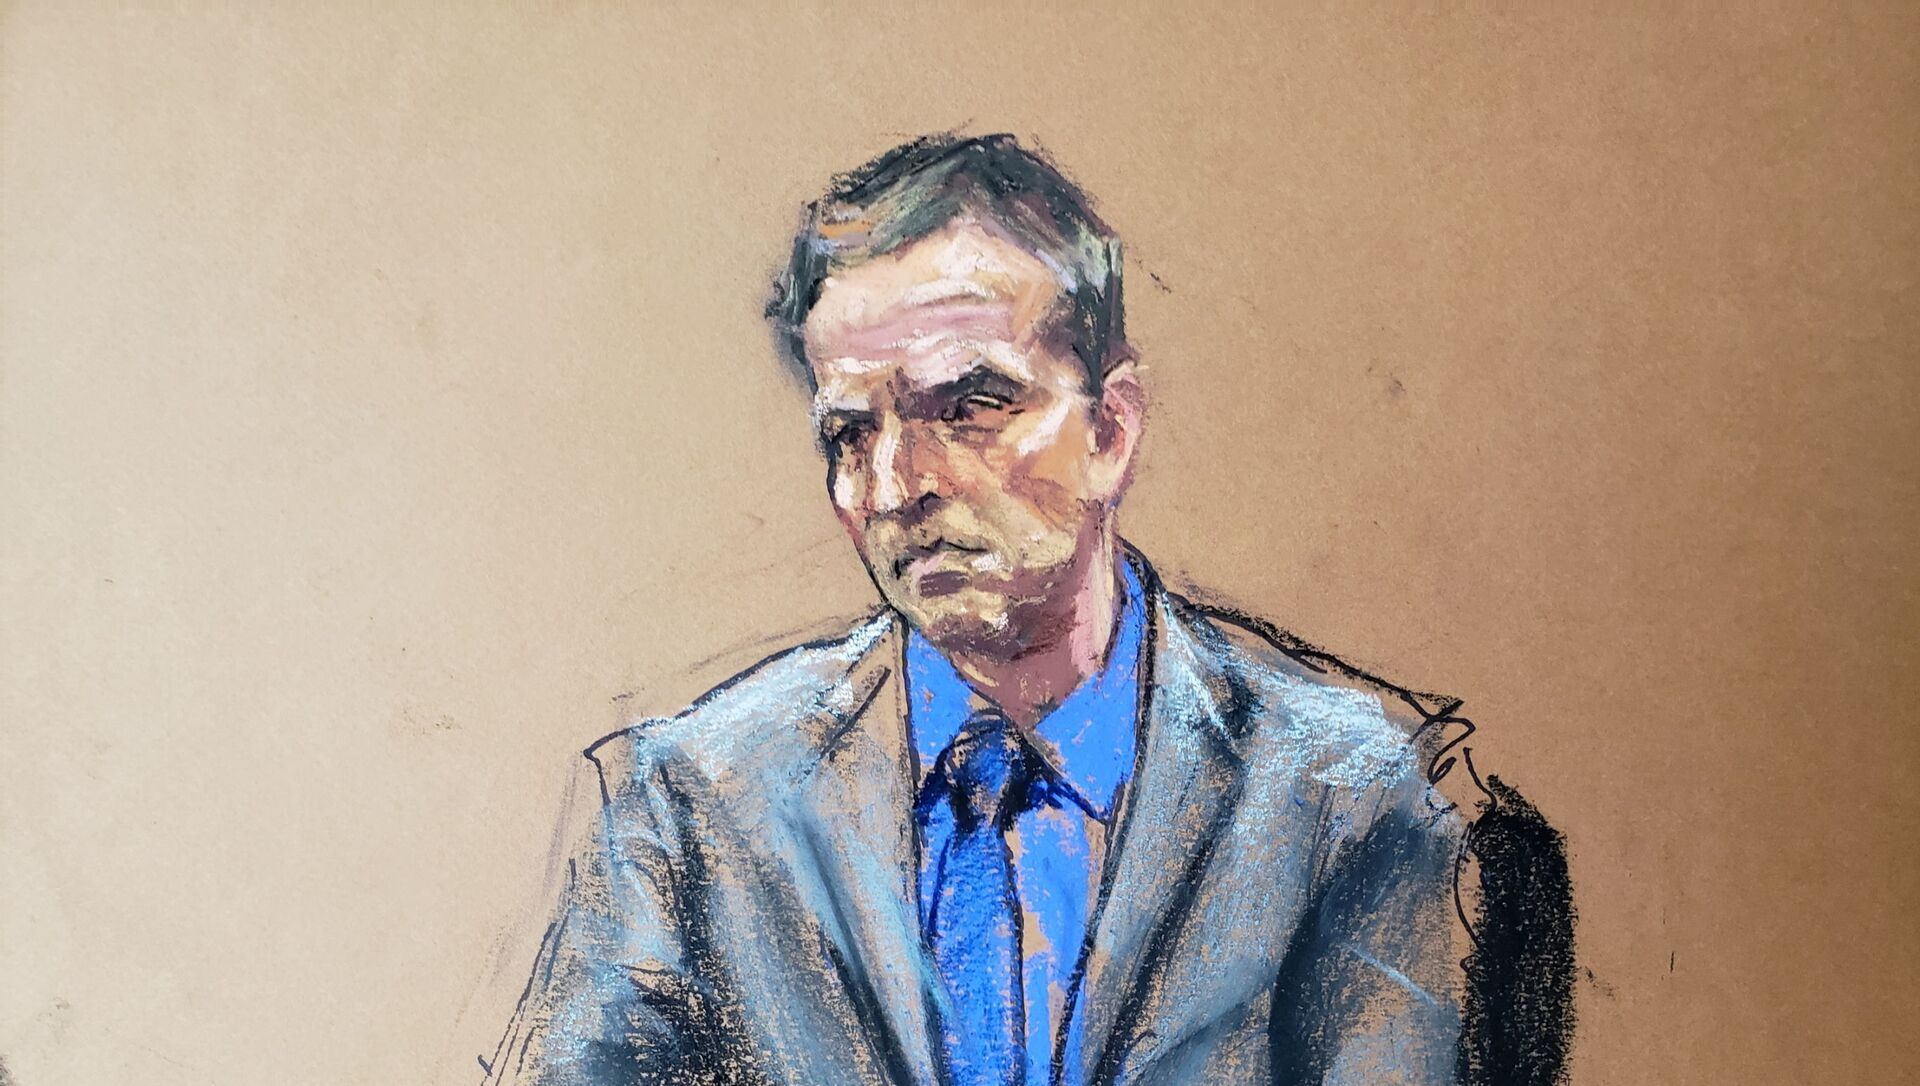 Former Minneapolis police officer Derek Chauvin listens as defence attorney Eric Nelson makes closing arguments during the trial of Chauvin for second-degree murder, third-degree murder and second-degree manslaughter in the death of George Floyd in Minneapolis, Minnesota, U.S. April 19, 2021 in this courtroom sketch.  - Sputnik International, 1920, 21.04.2021